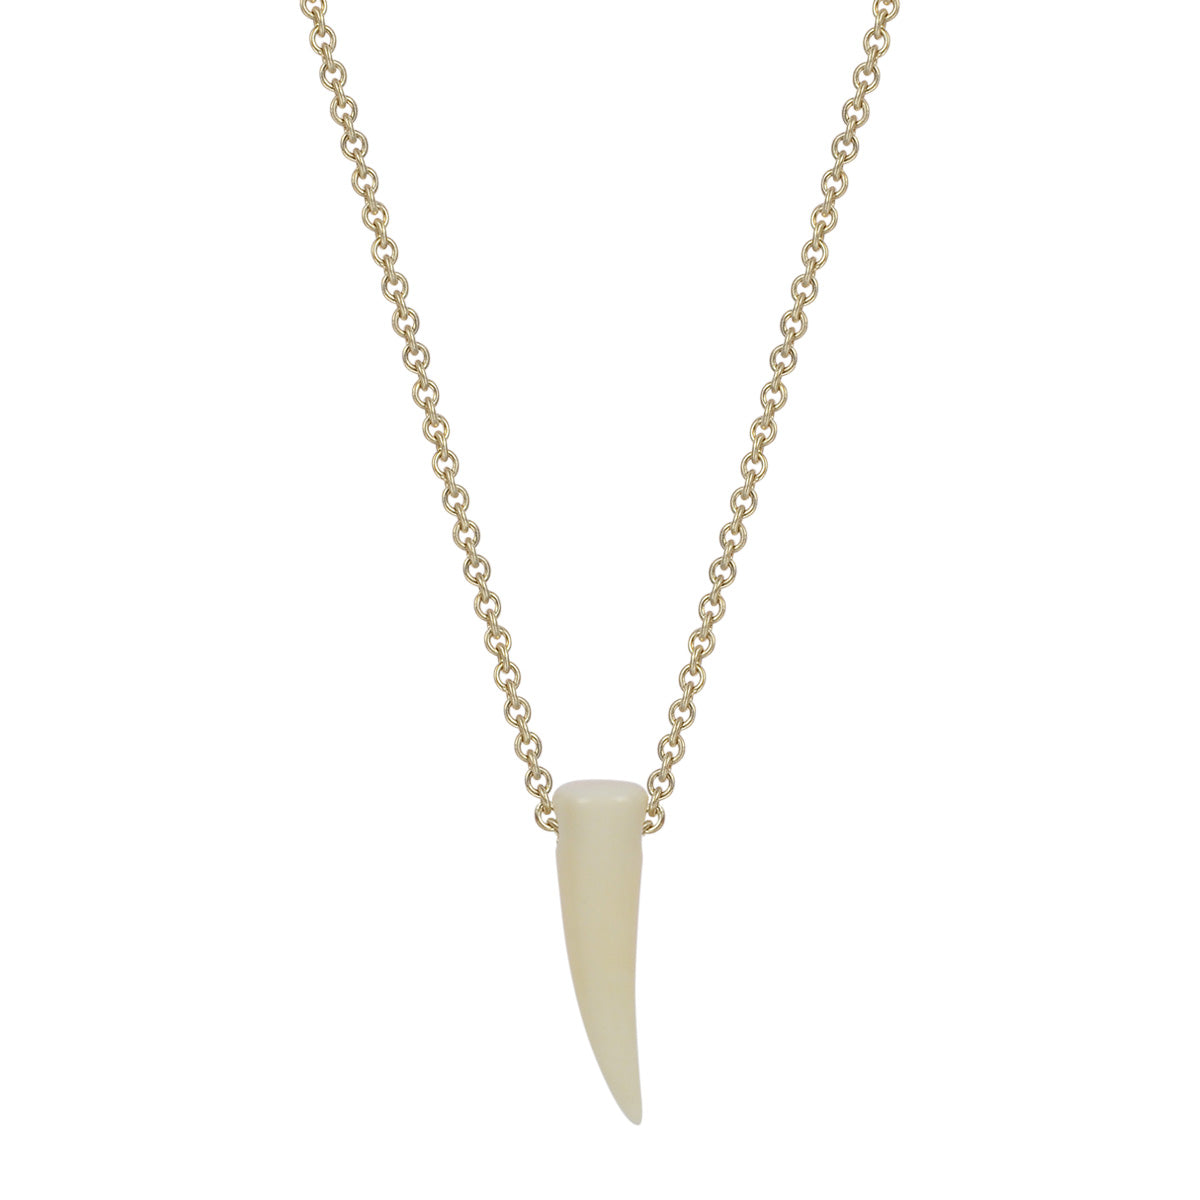 10K Gold Fossilized Walrus Ivory Horn on Chain